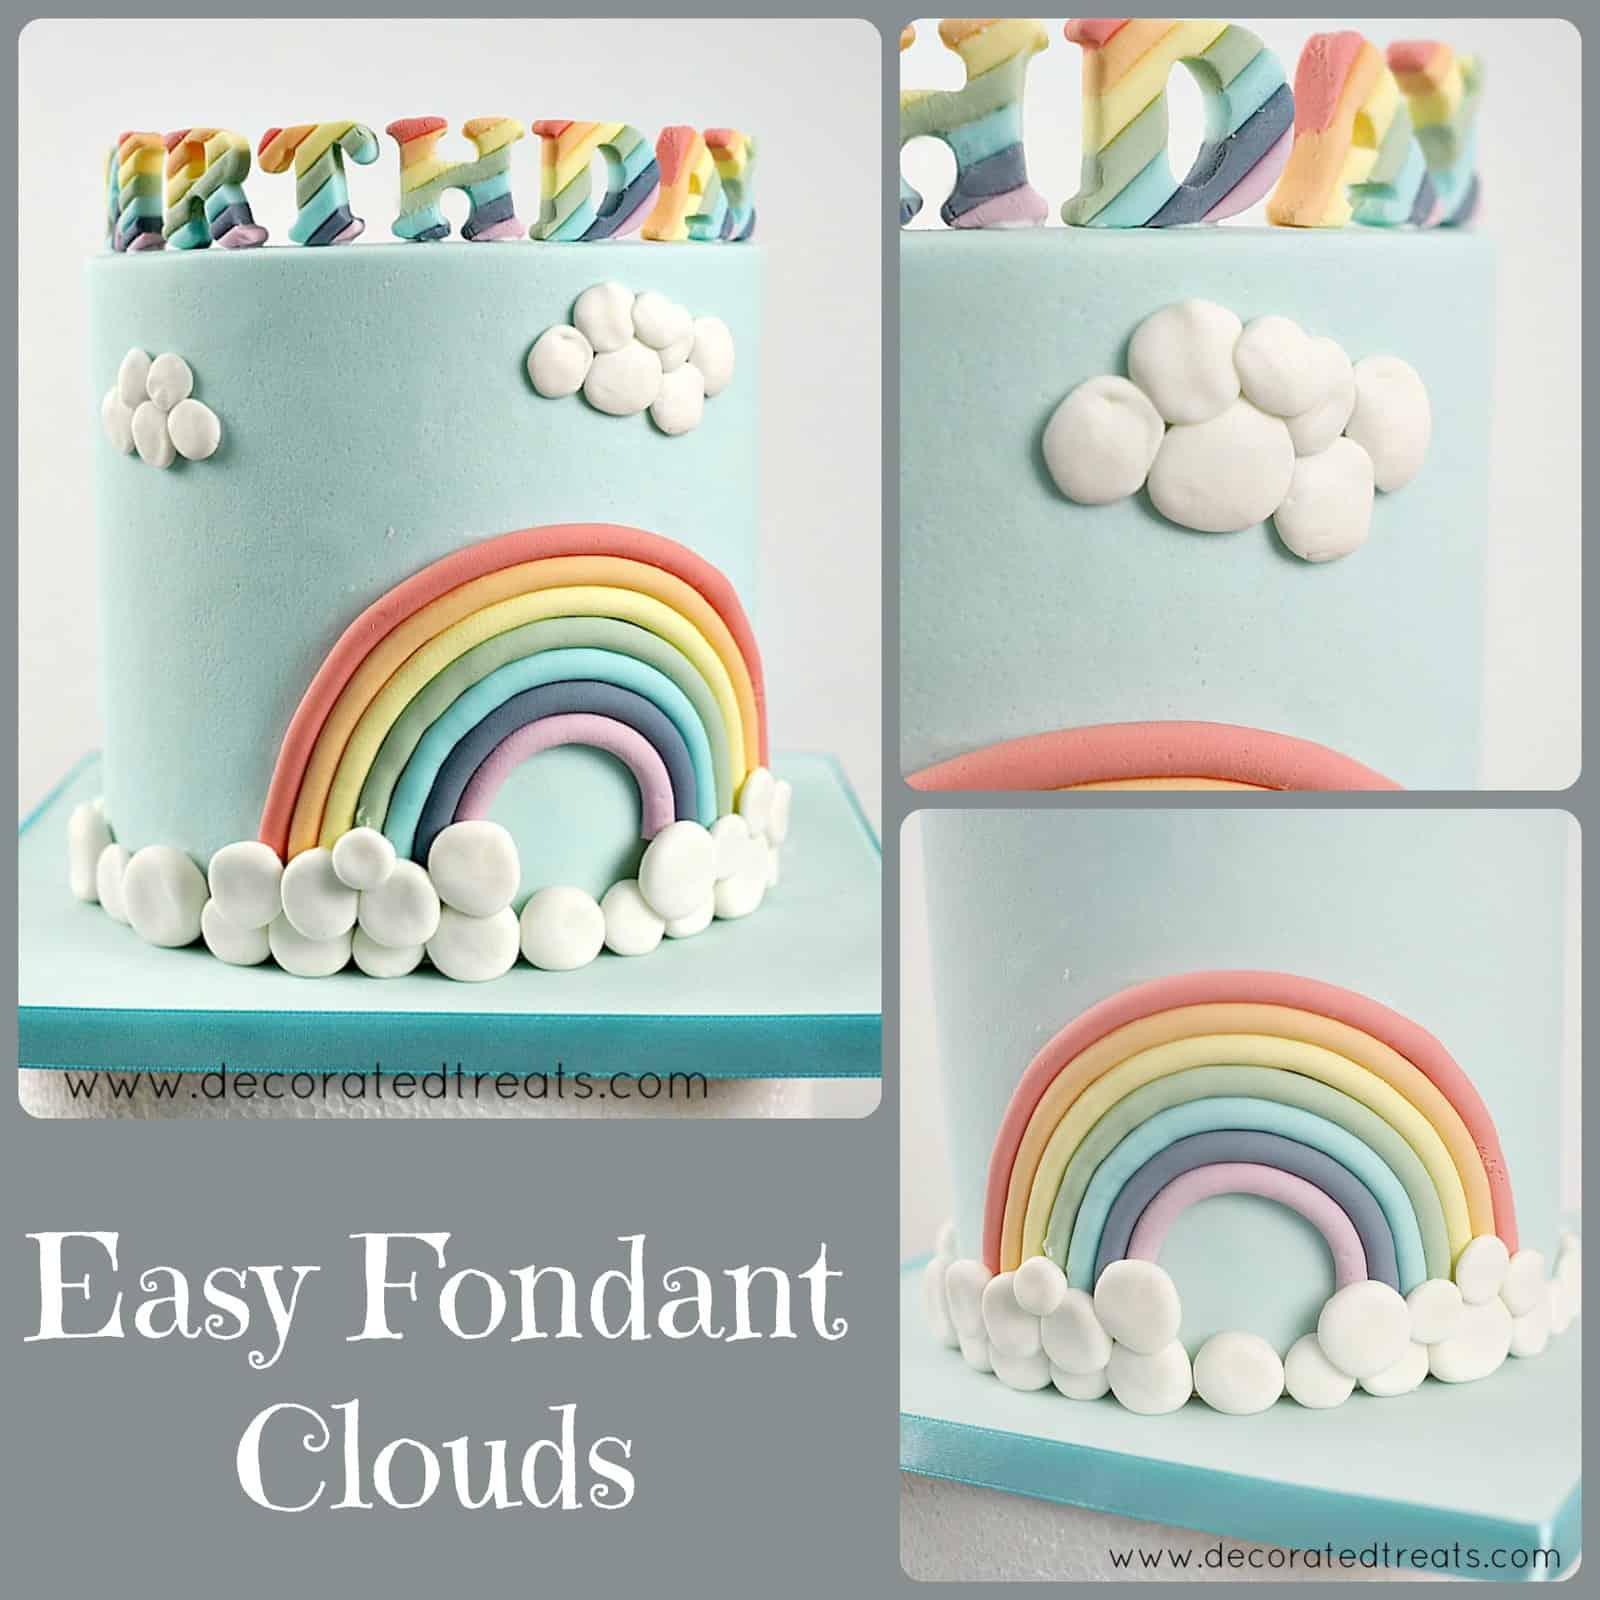 Poster showing  cake decorated with white fondant clouds